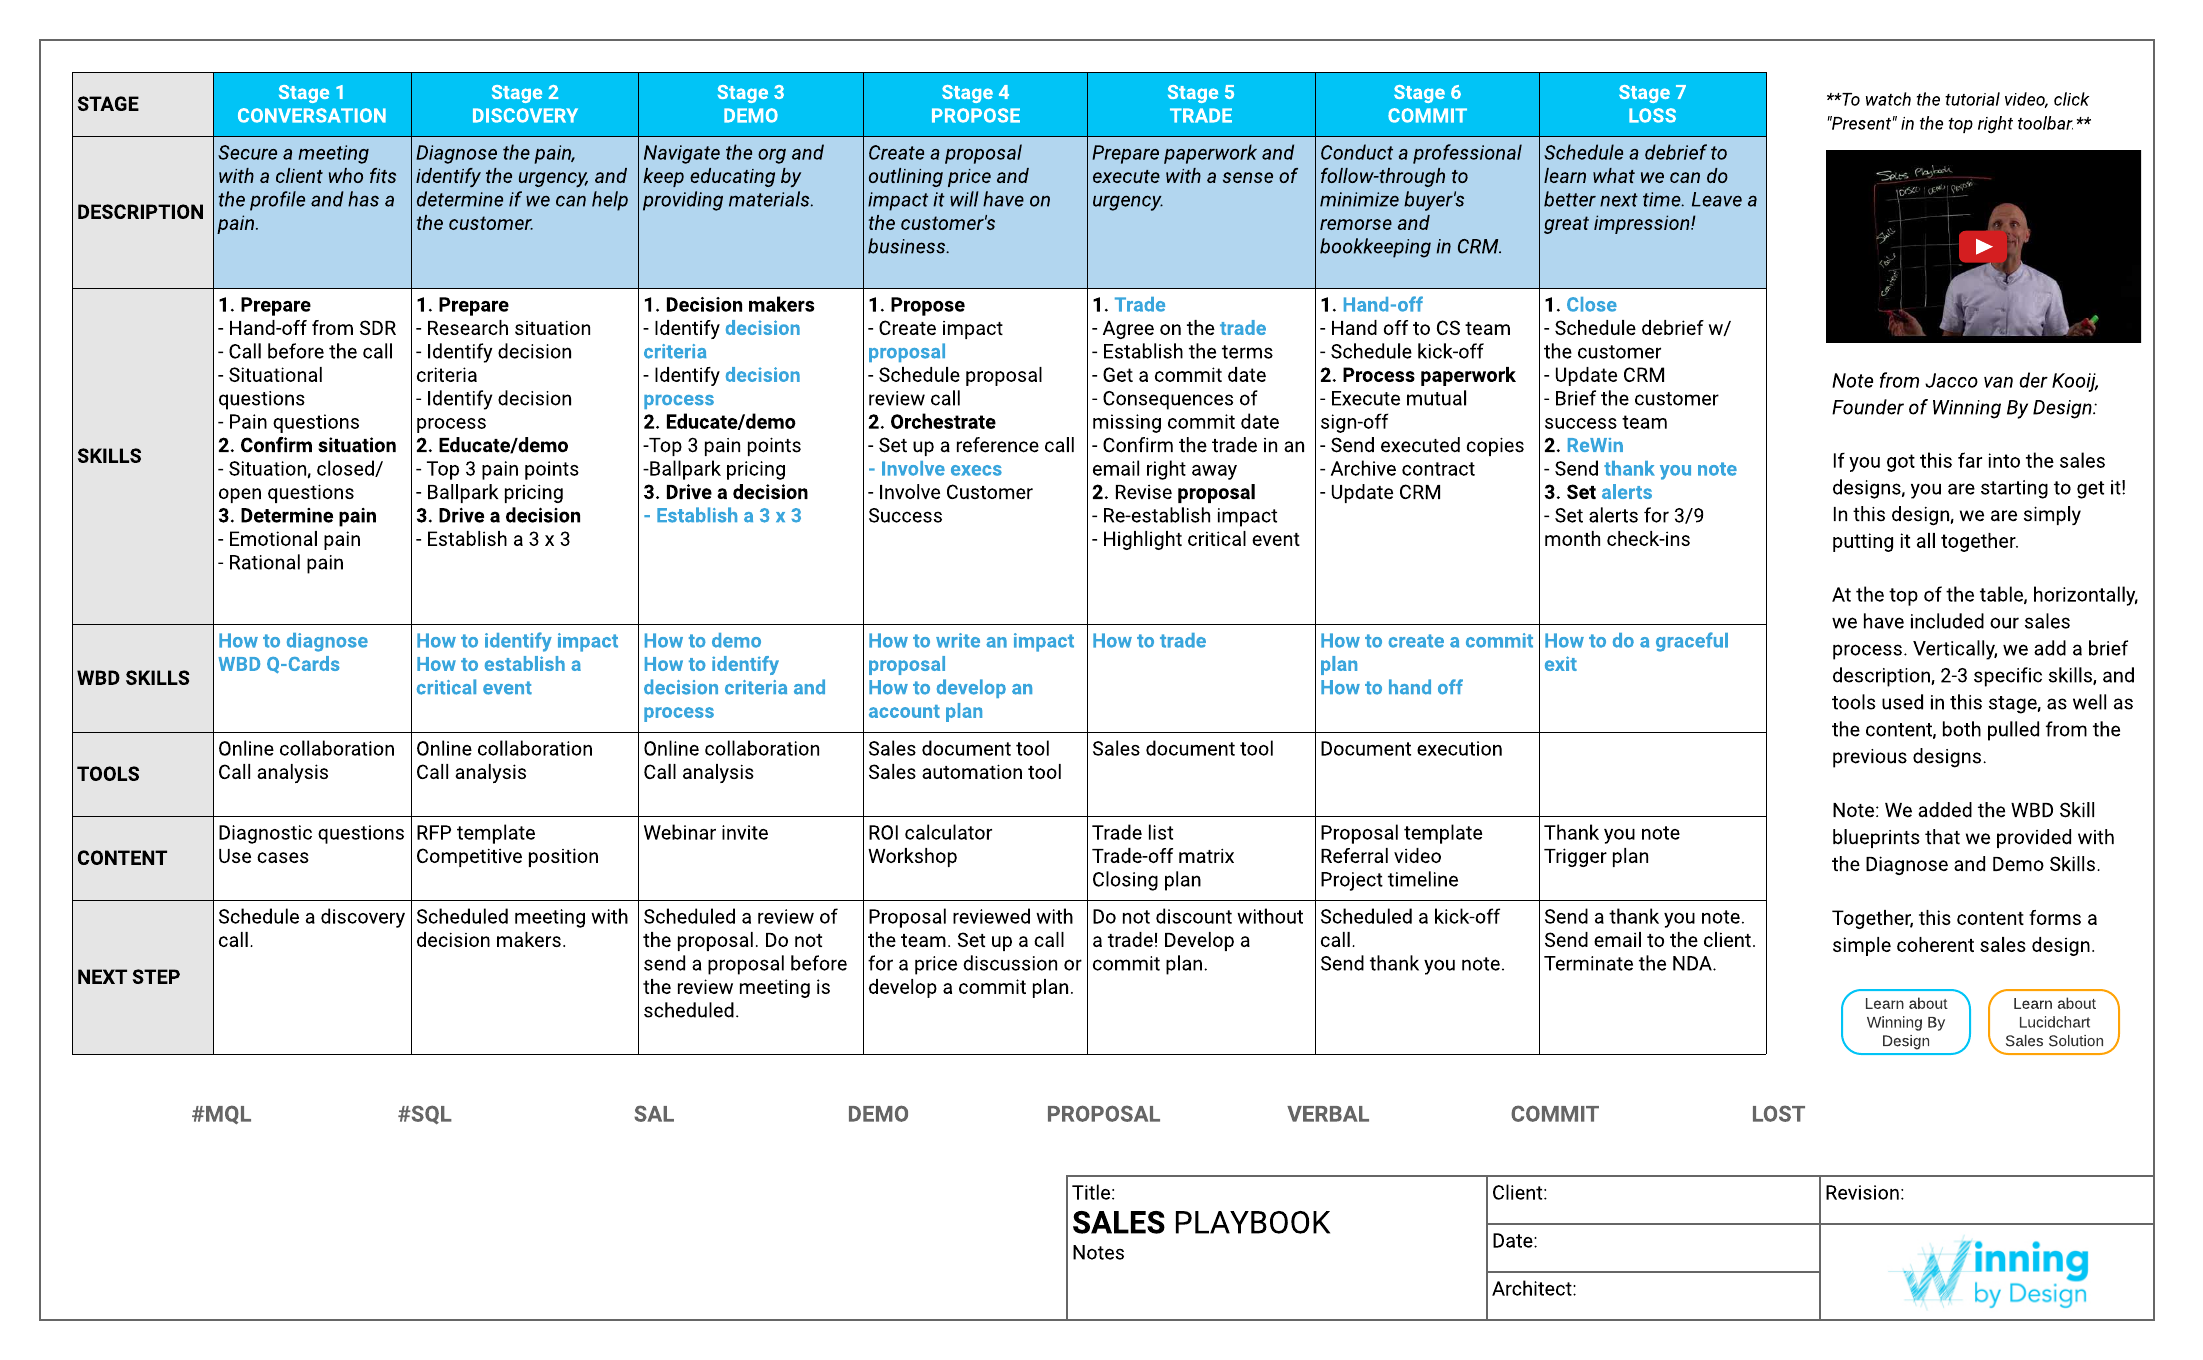 Sales Playbook Template Pdf